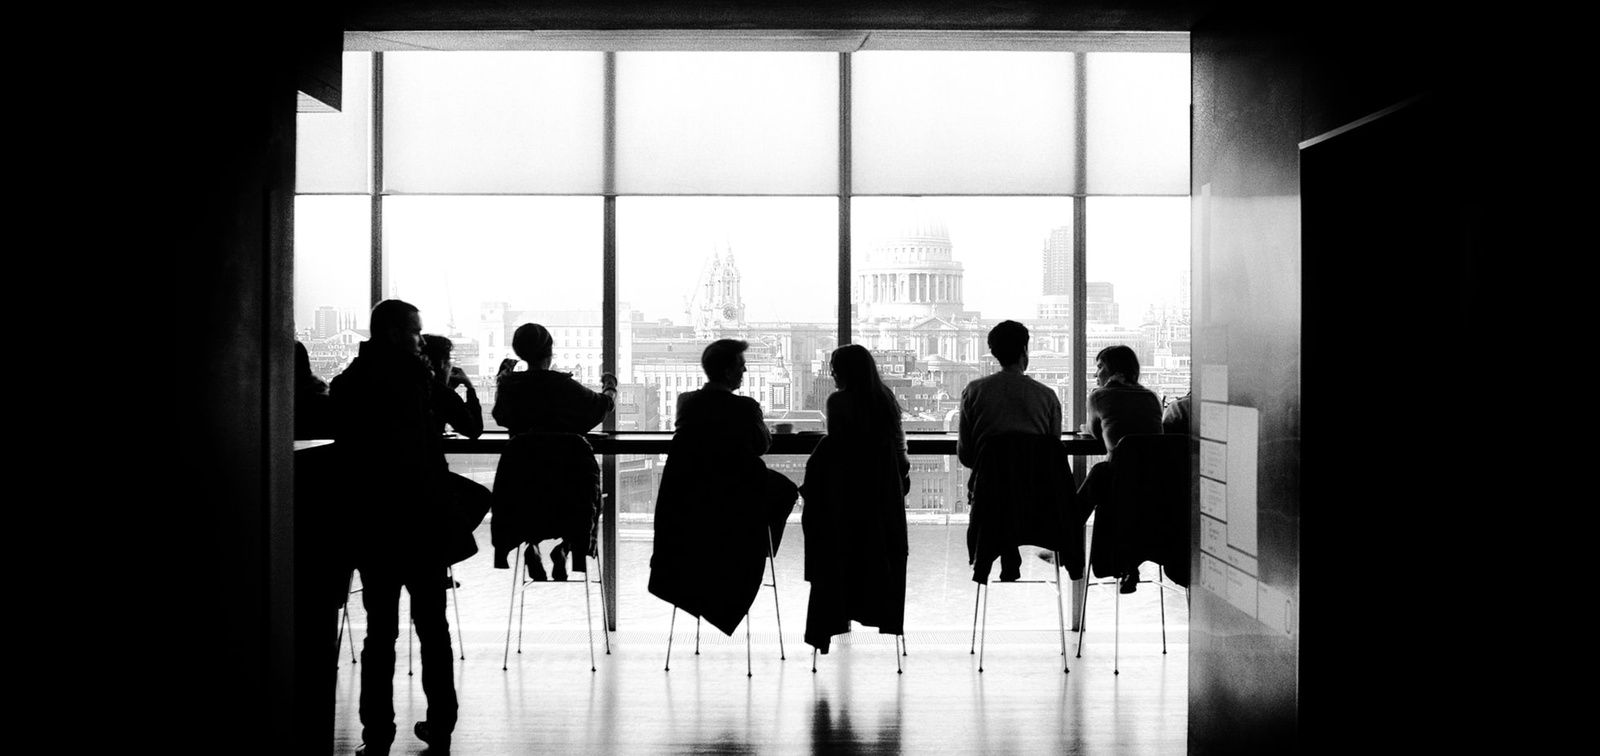 CISO vs. CEO: How executives rate their security posture